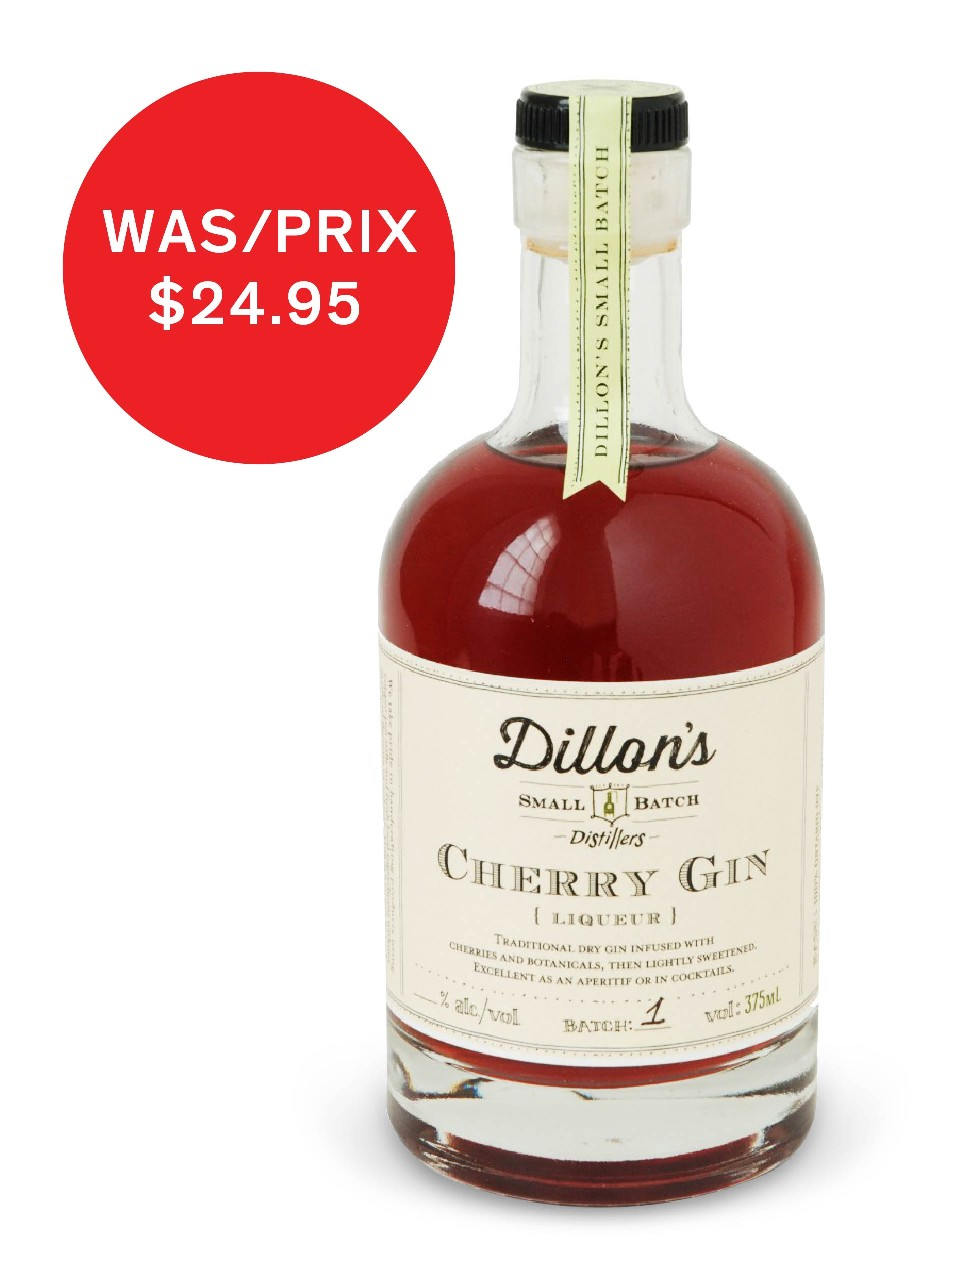 Dillon's Small Batch Distillers Cherry Gin